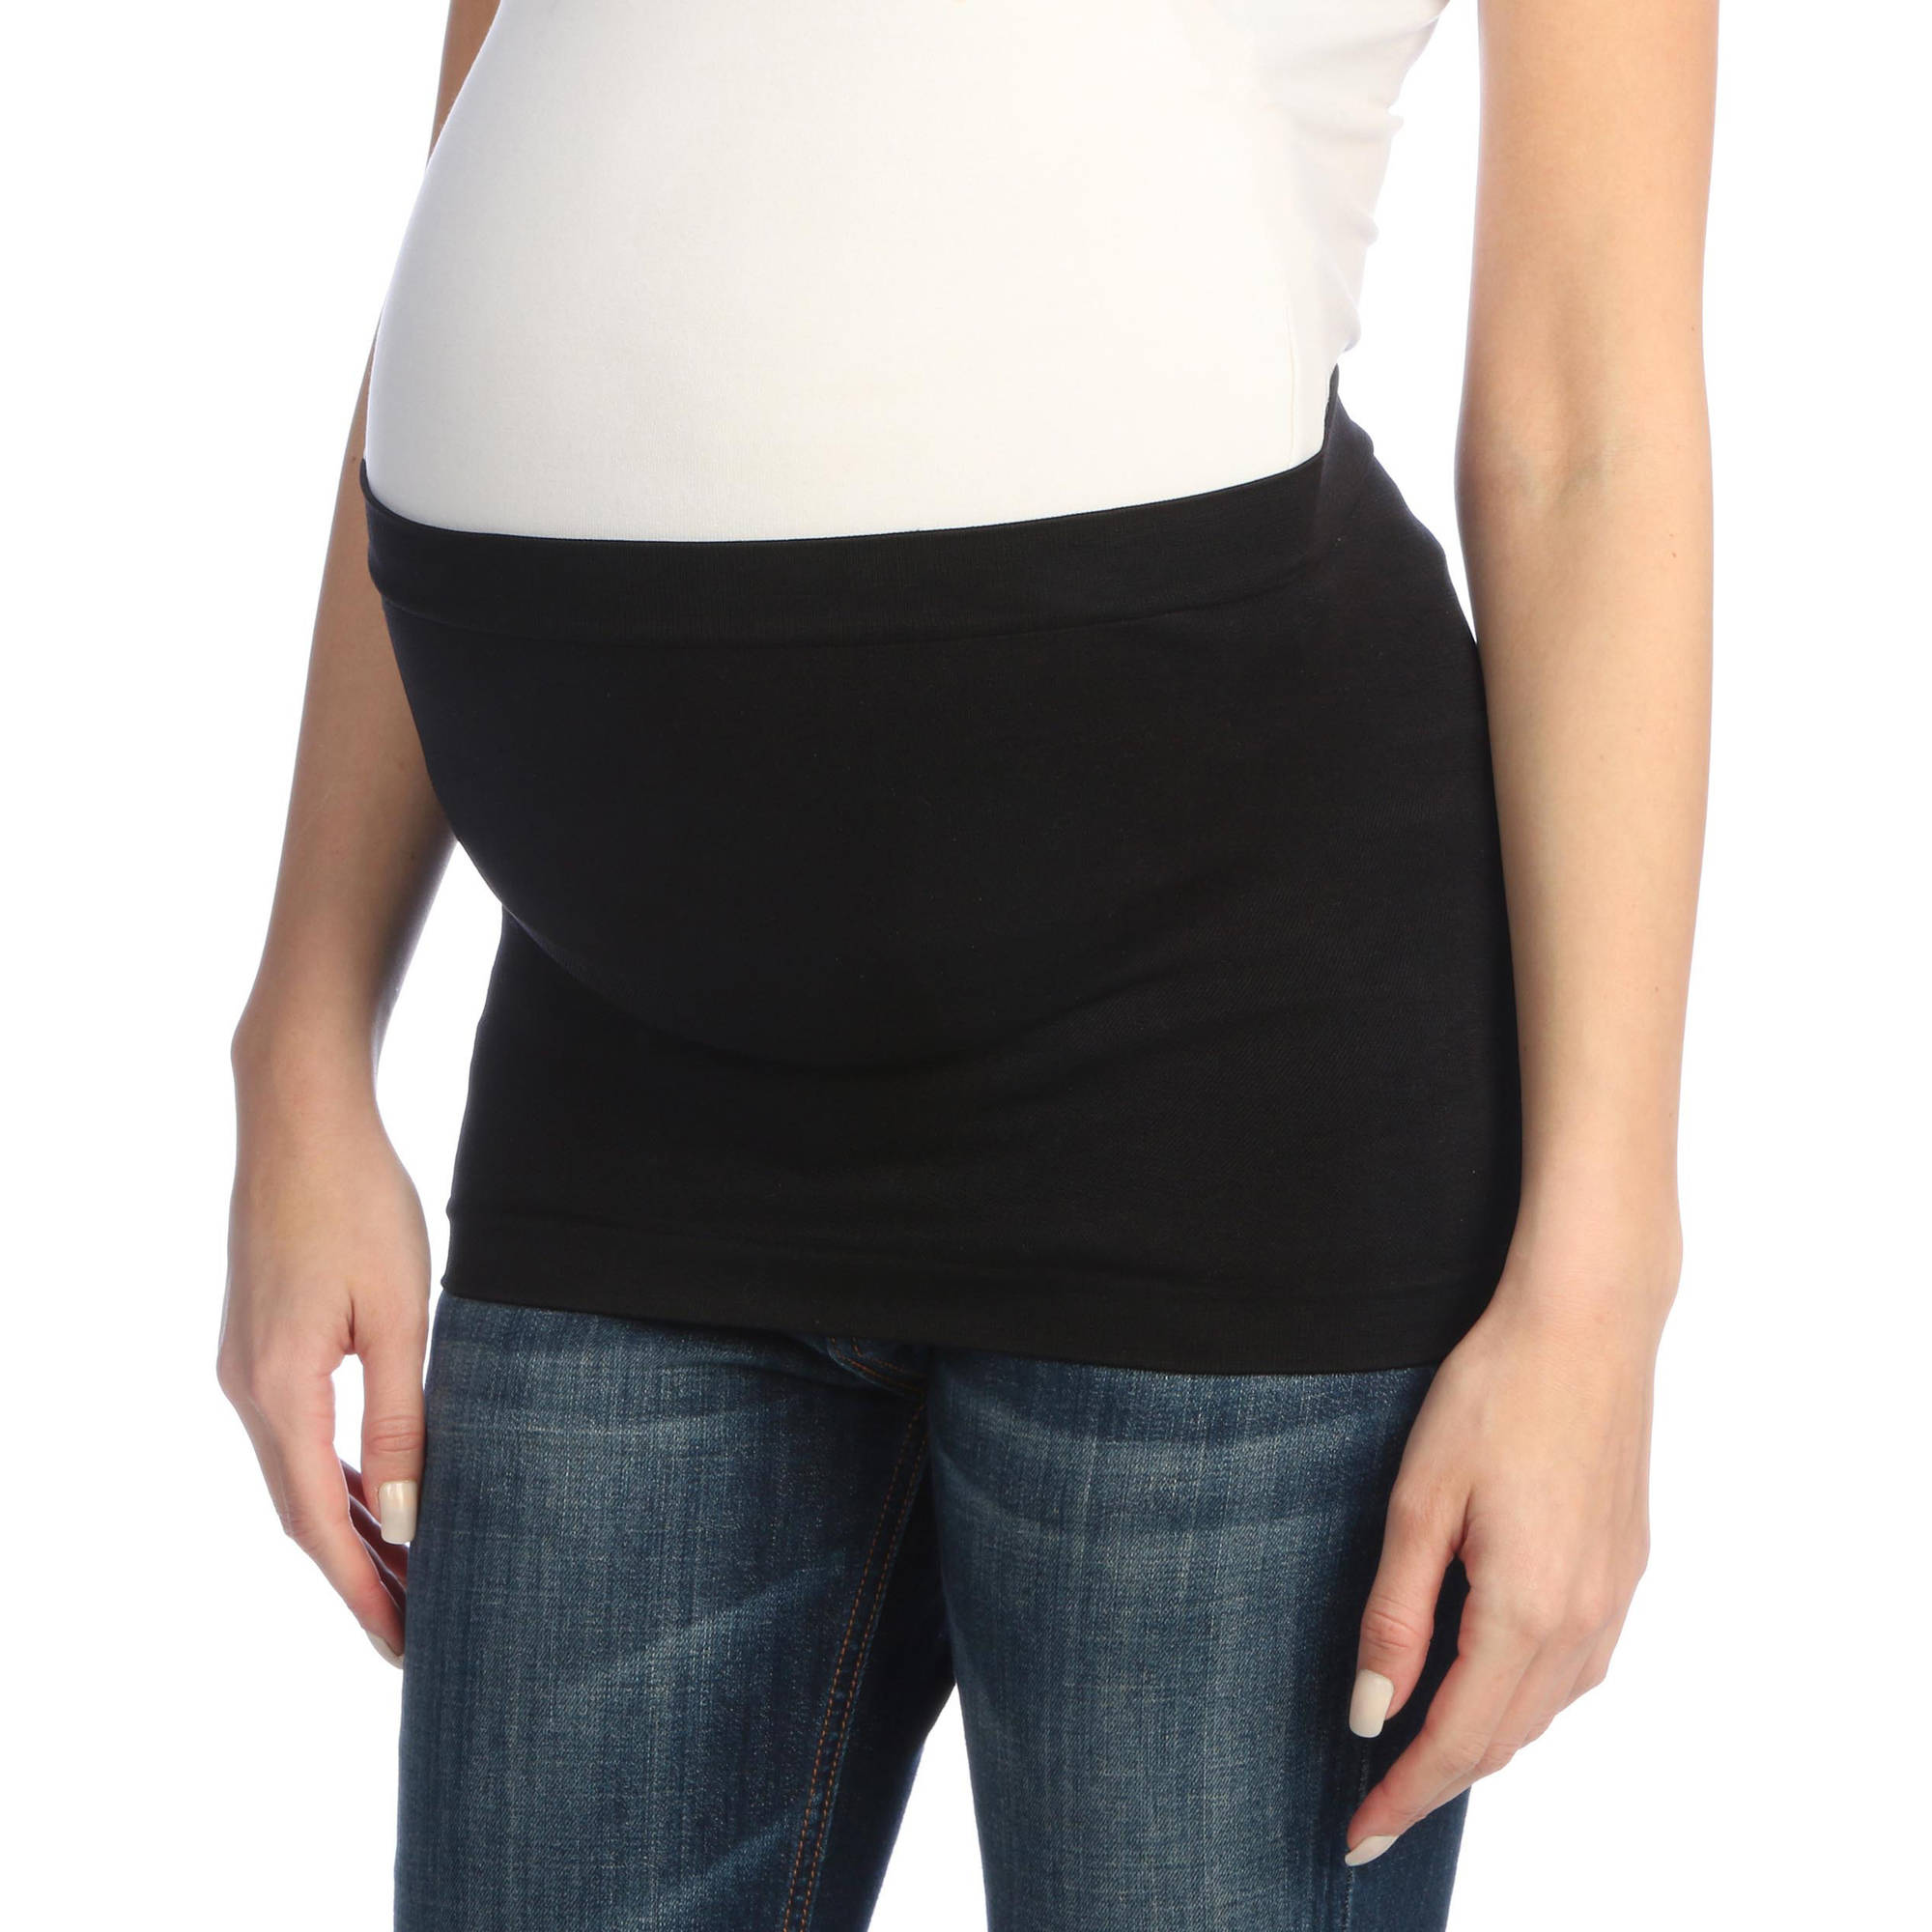 Nurture by Lamaze Maternity Plus-Size Seamless Everyday Belly Band